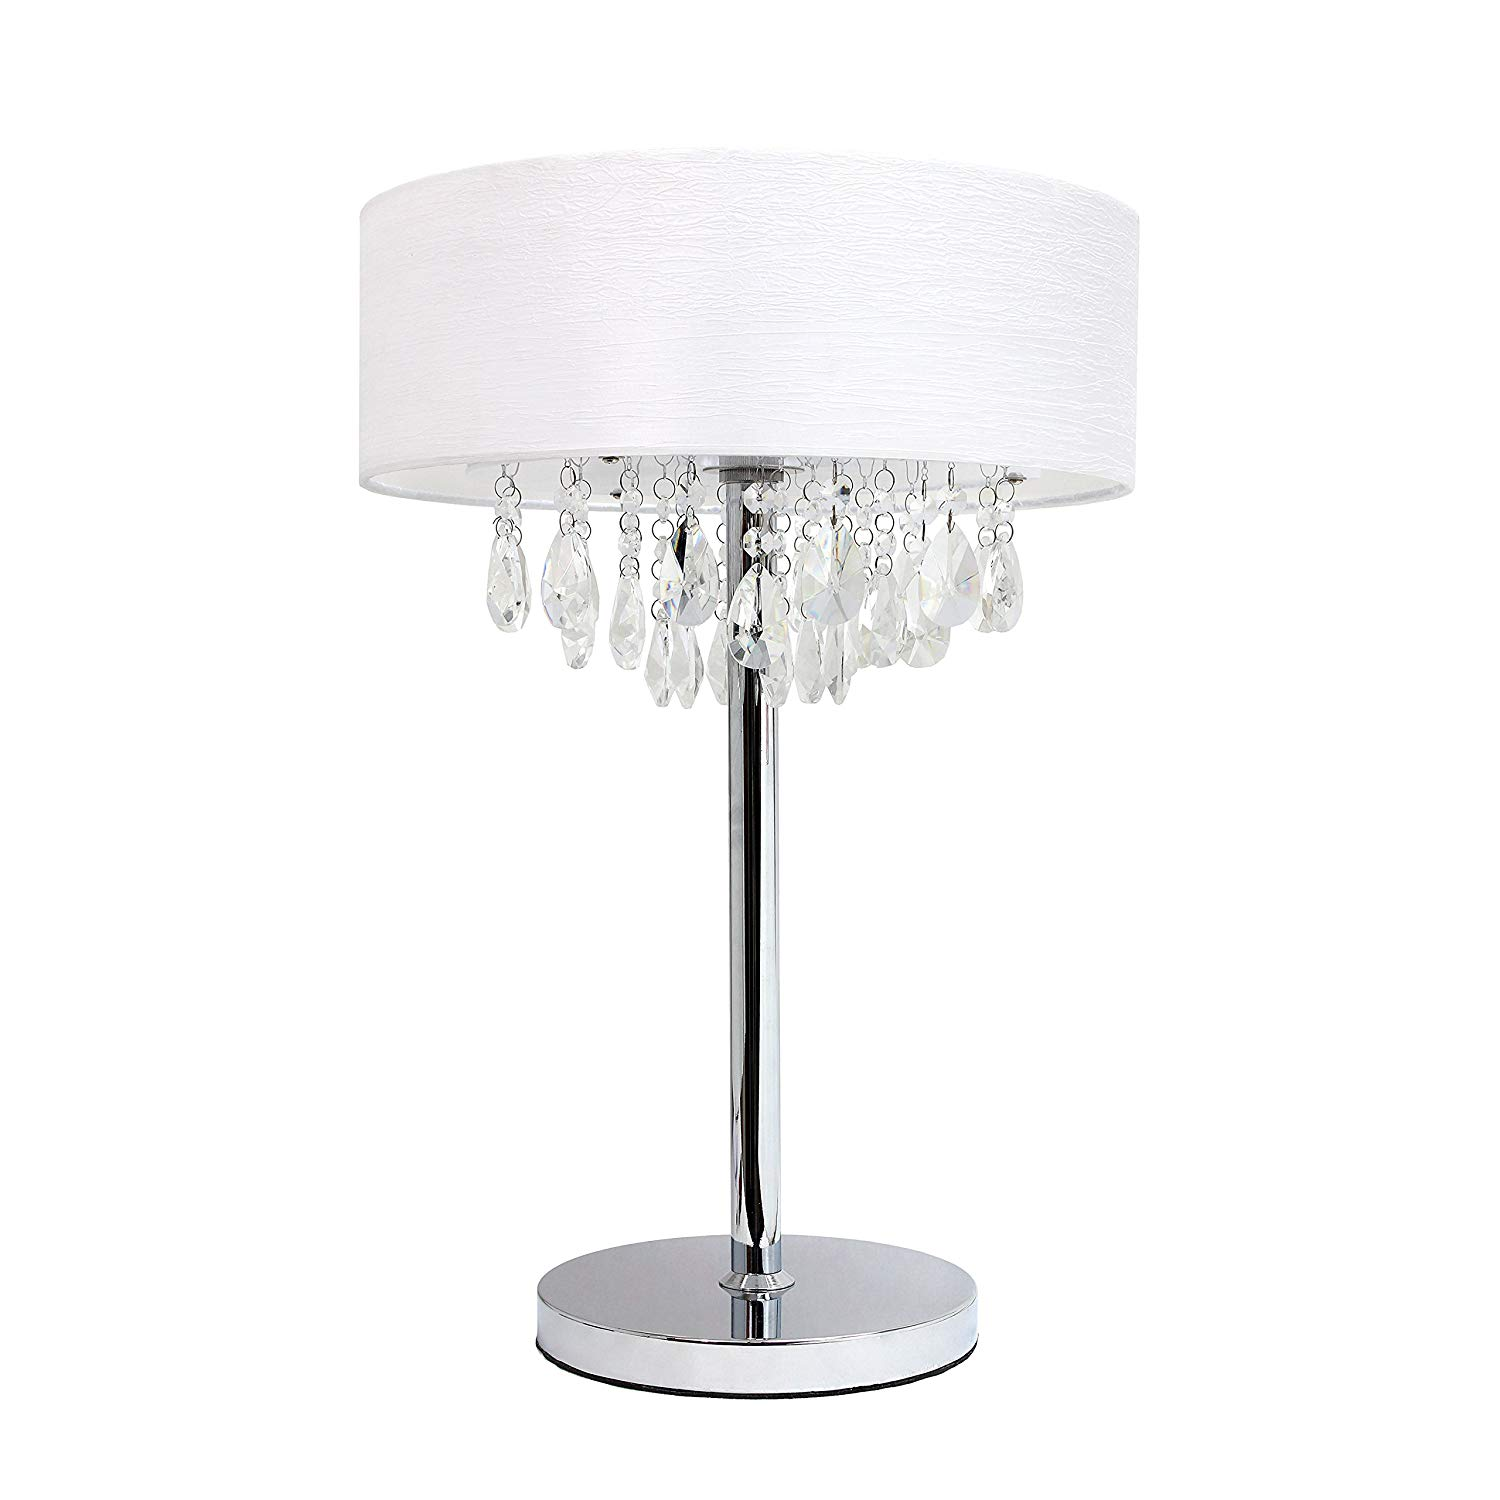 Elegant Designs LT1023-WHT Romazzino Crystal and Chrome Table Lamp with Ruched Fabric Drum Shade, White